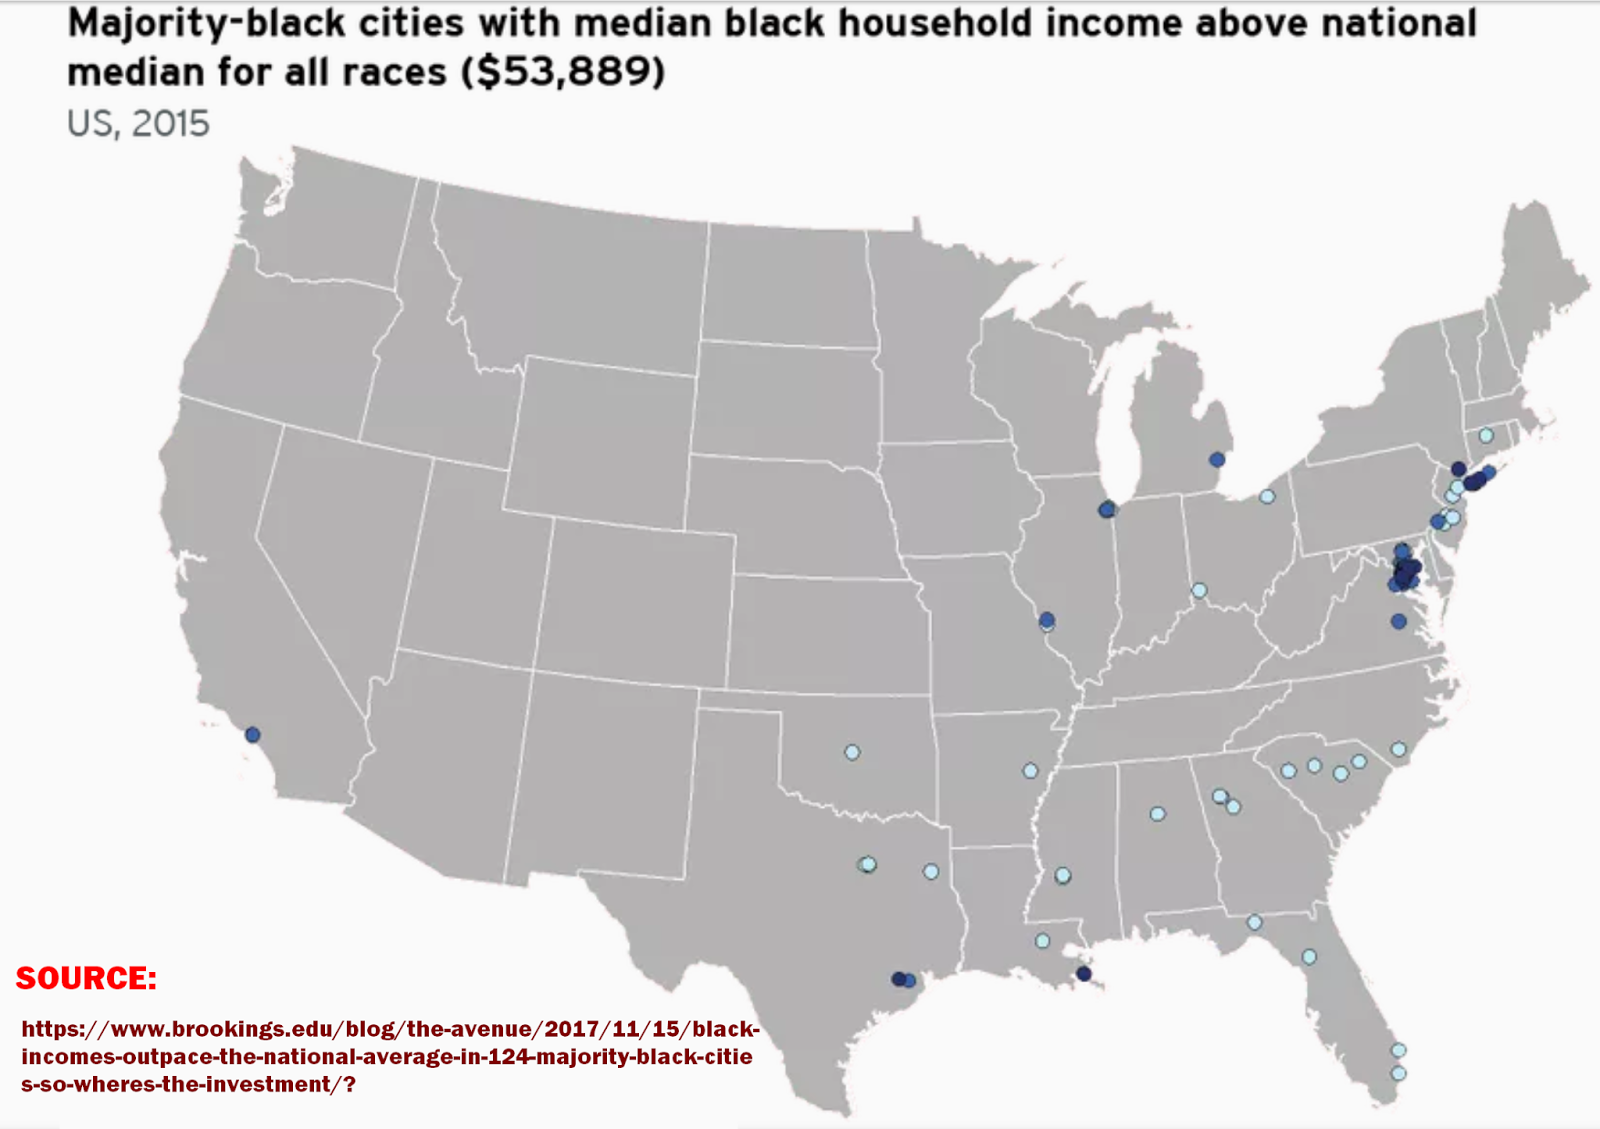 a national map of majority black cities ranked by median household incomes of black families shows that 124 communities outpace the national median